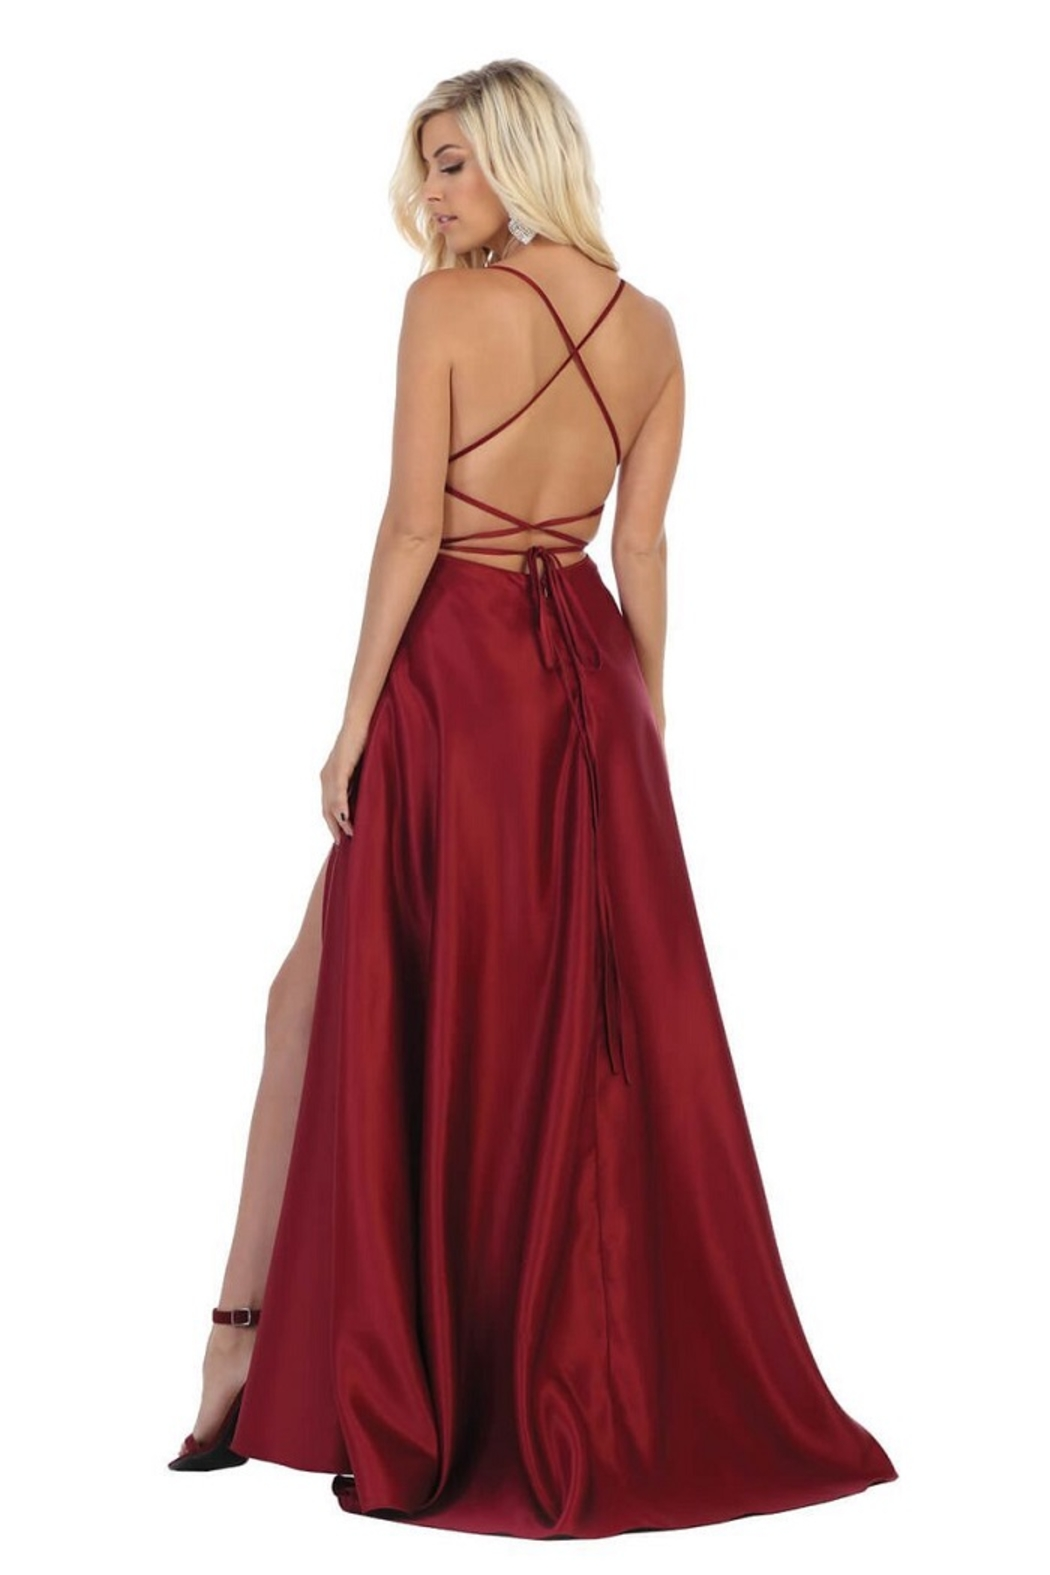 May Queen  Burgundy Satin A-Line Formal Long Dress - Front Full Image